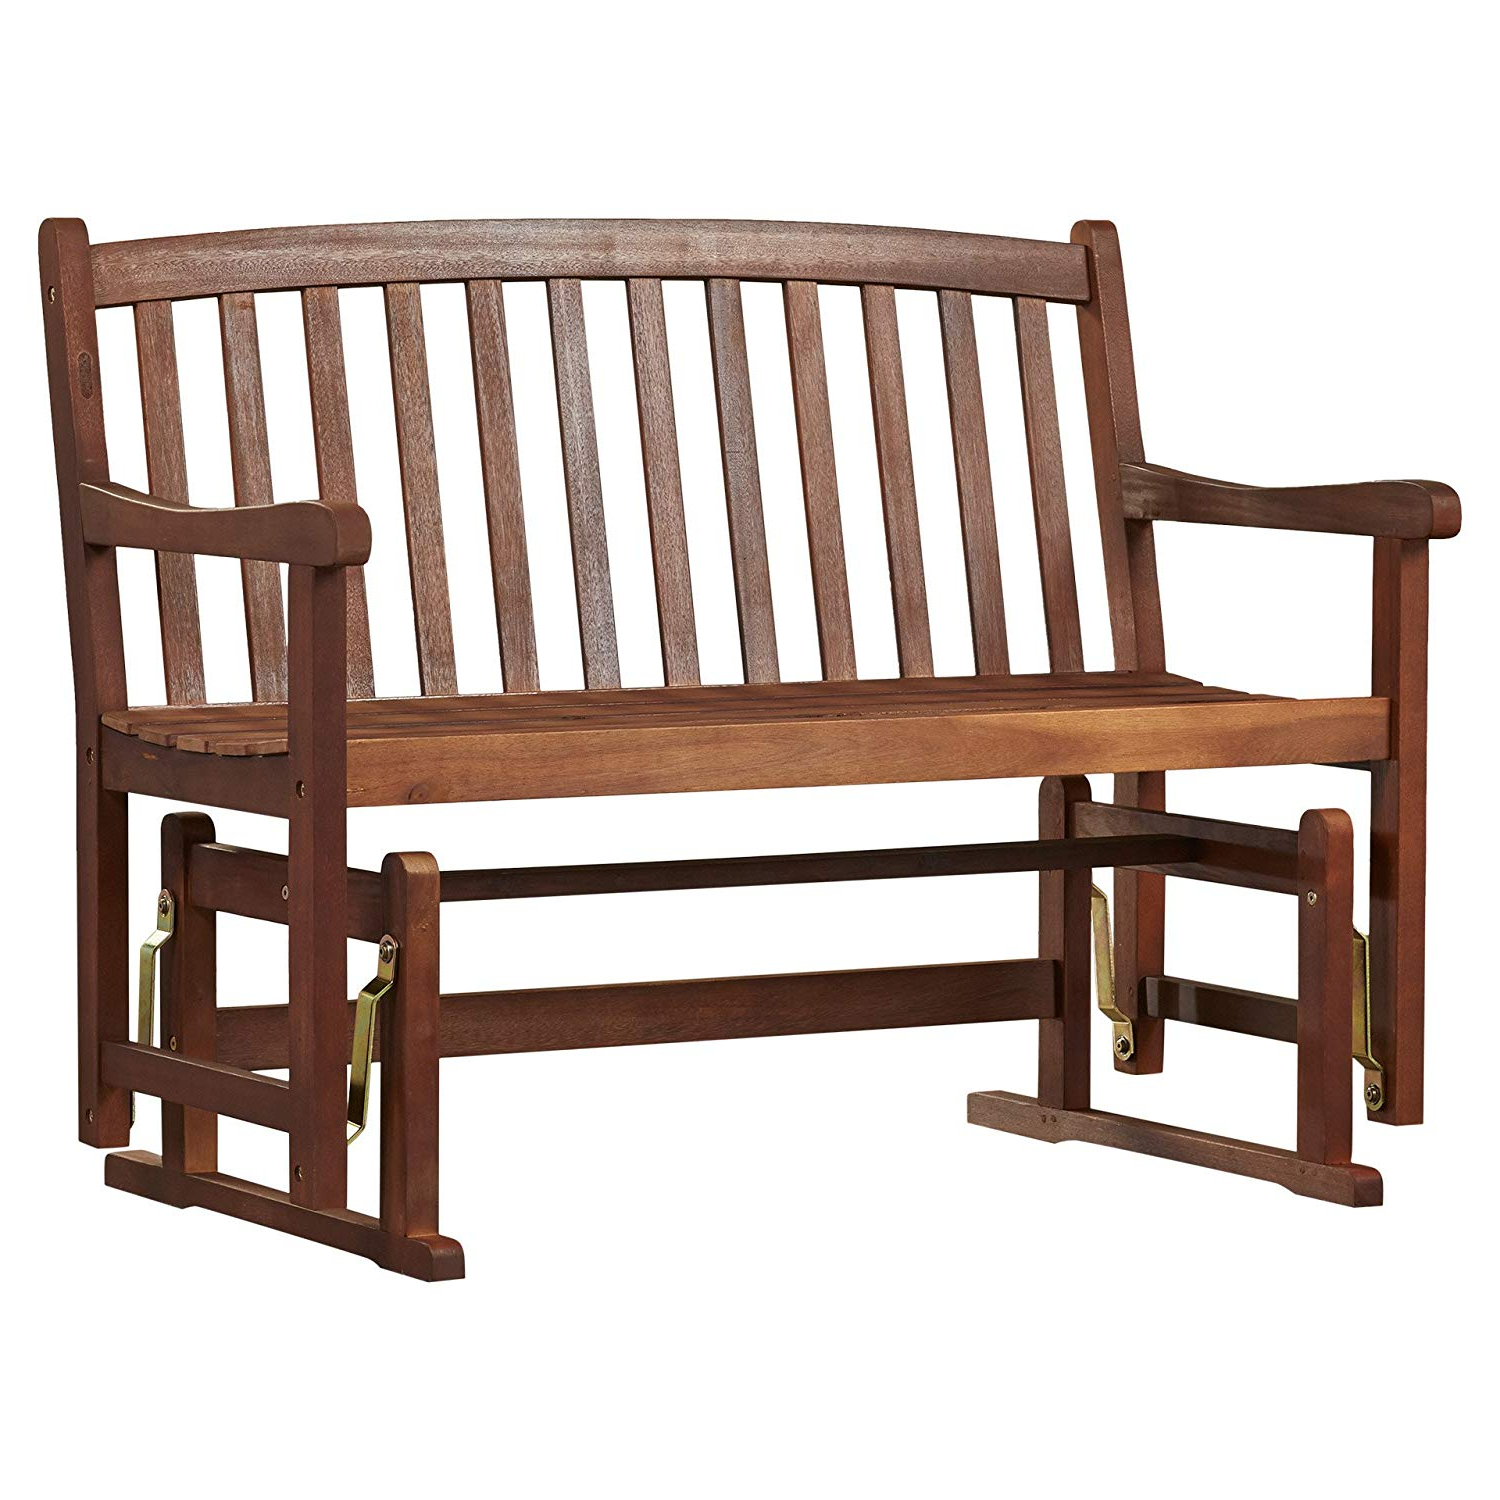 Current Classic Glider Benches Regarding Amazon : Classic Style Worcester Glider Wood Garden (View 4 of 30)